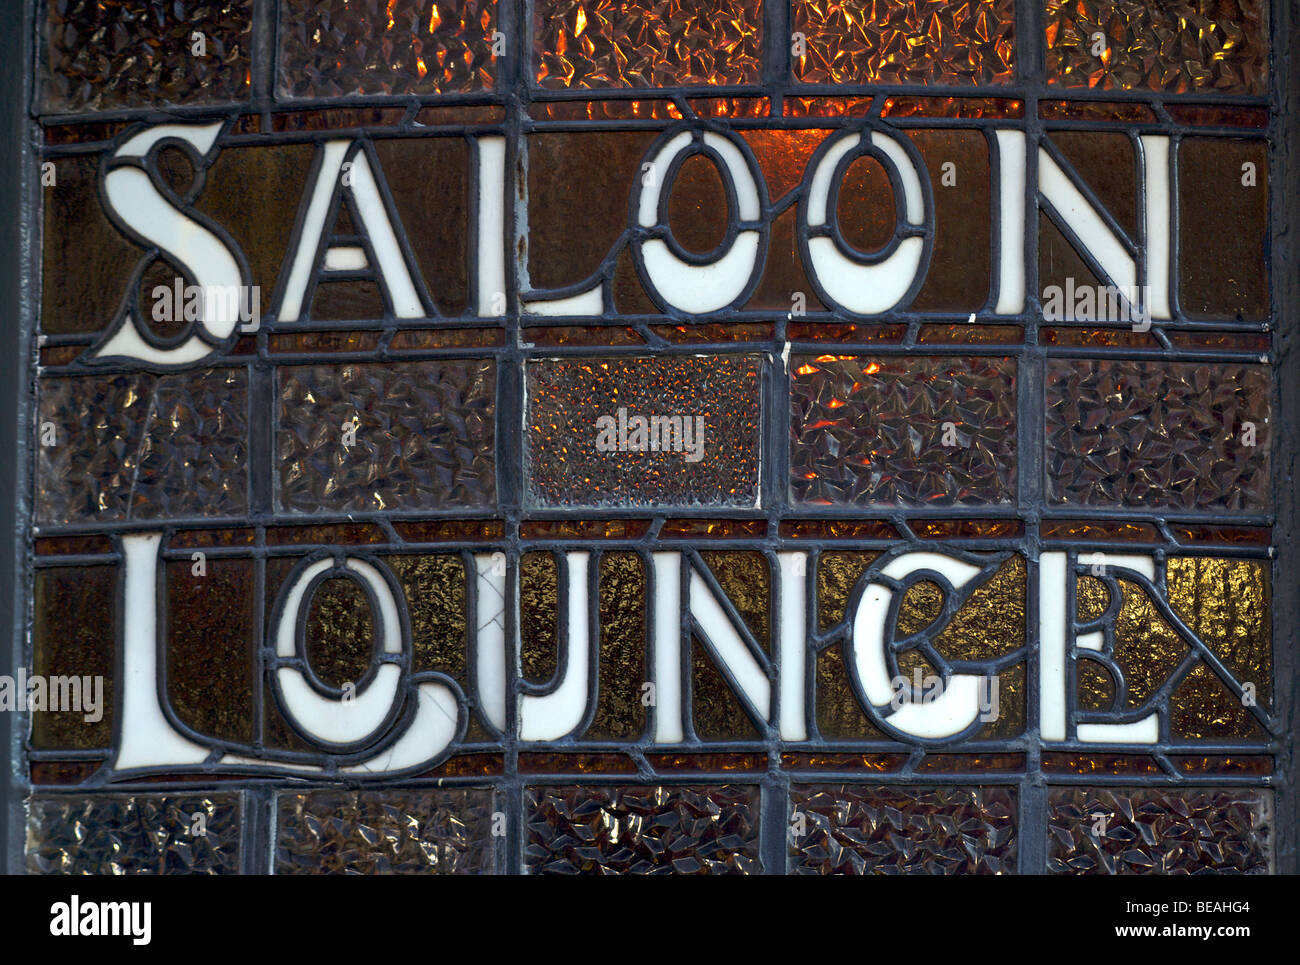 SALOON LOUNGE. Leaded window sign, Brighton, England Stock Photo